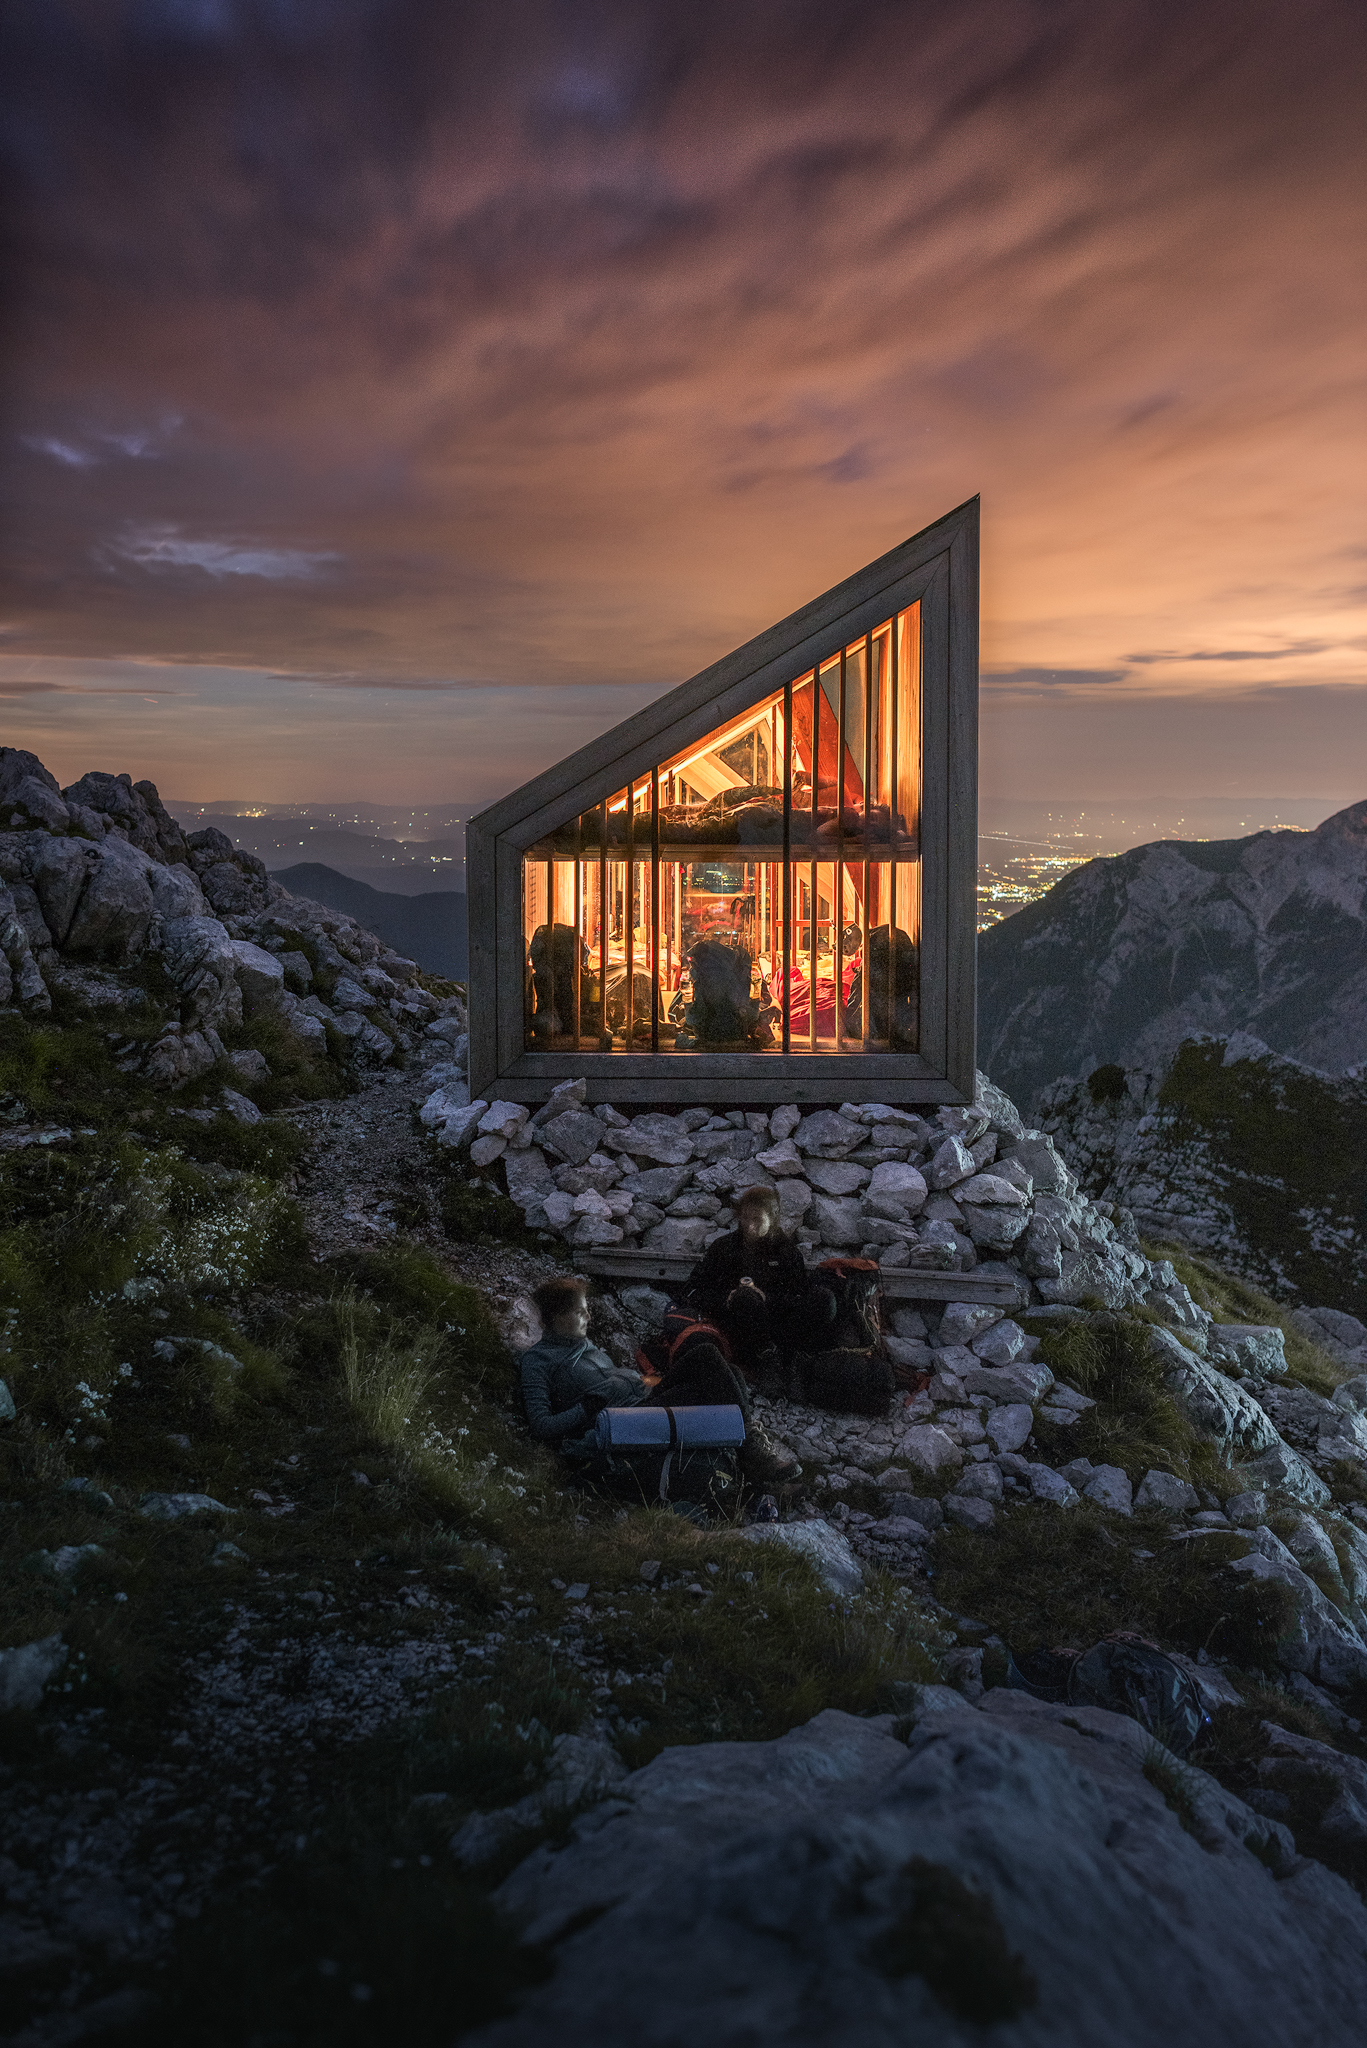 Mountain shelter...